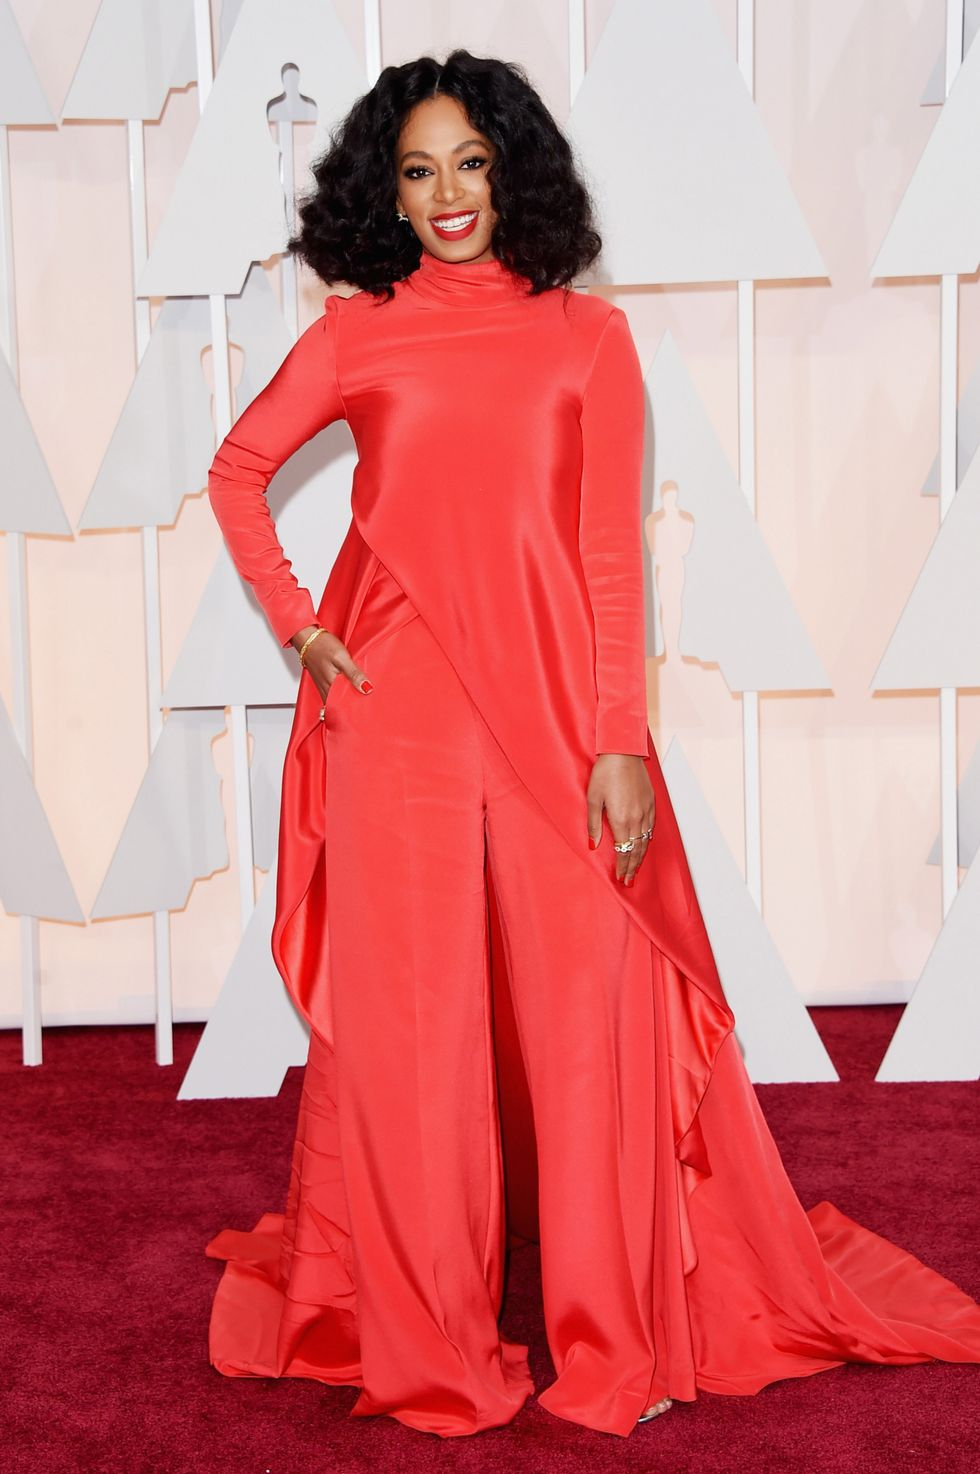 The Best and Worst Celebrity Fashion at the Oscars